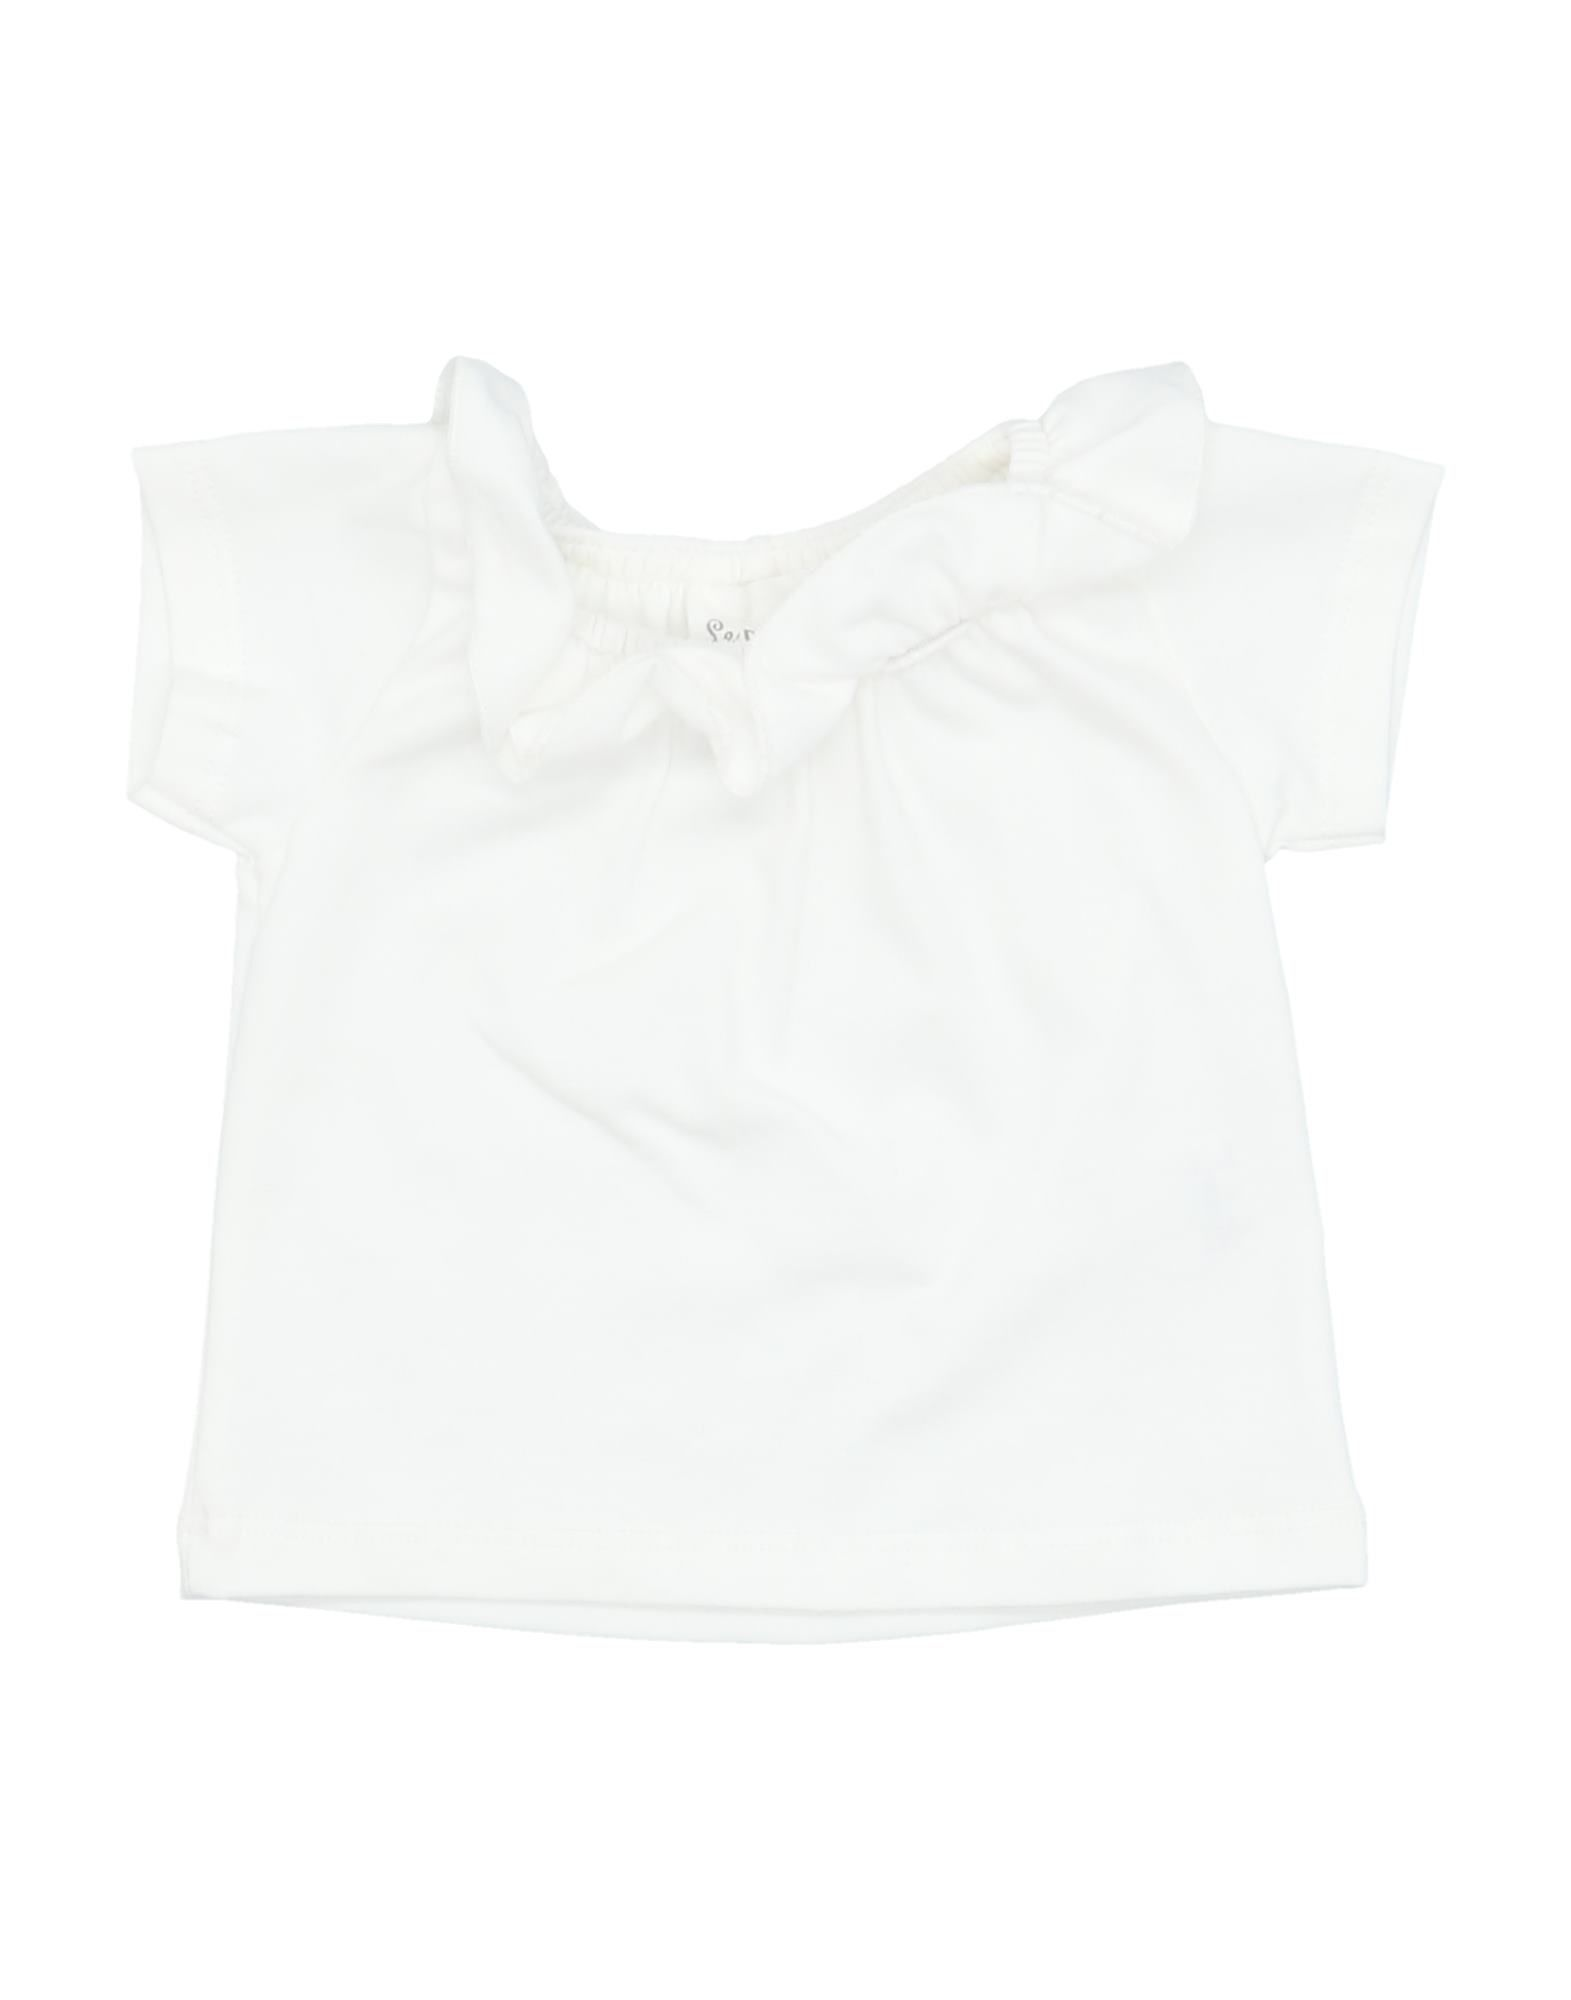 Le Petit Coco Kids' T-shirts In White